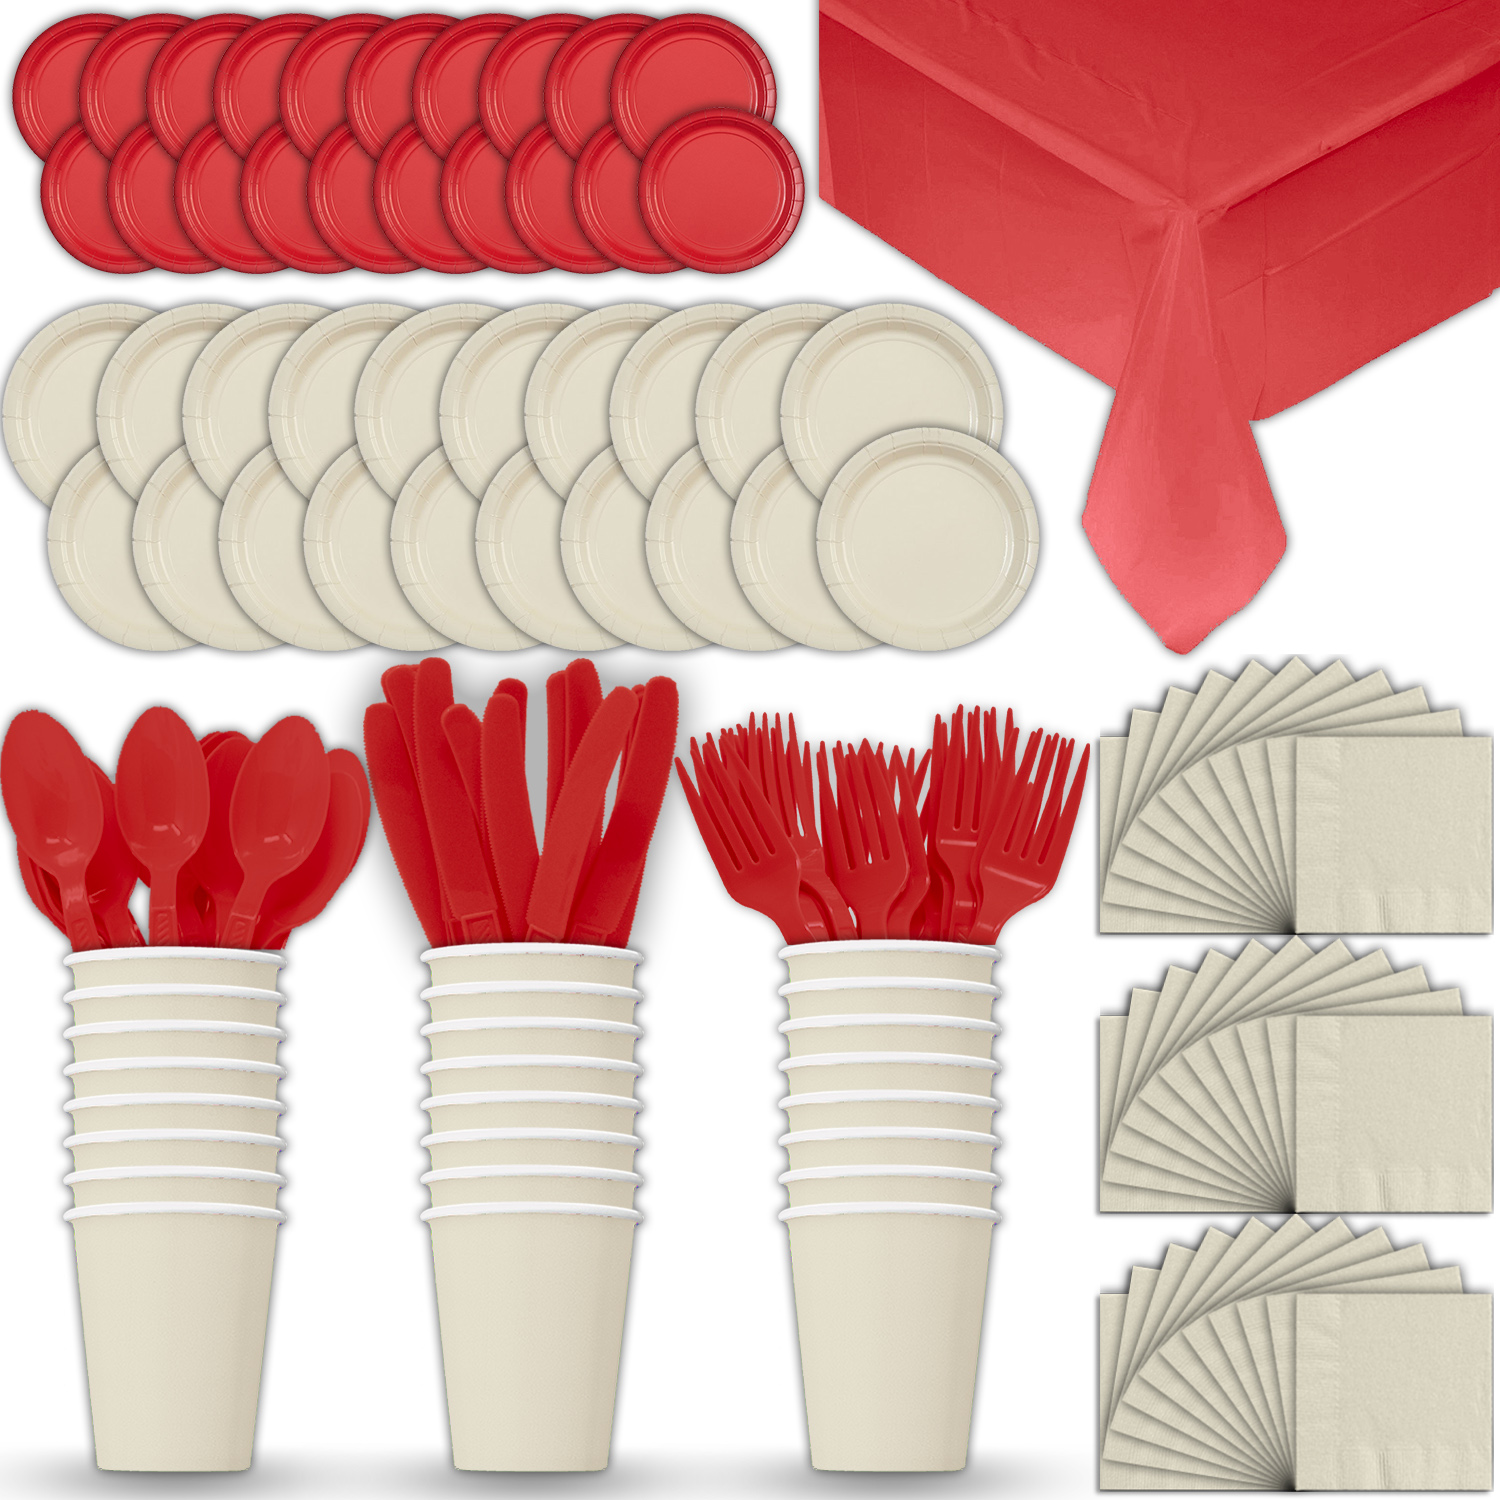 Paper Tableware Set for 24 - Cream & Red - Dinner and Dessert Plates, Cups, Napkins, Cutlery (Spoons, Forks, Knives), and Tablecloths - Full Two-Tone Party Supplies Pack